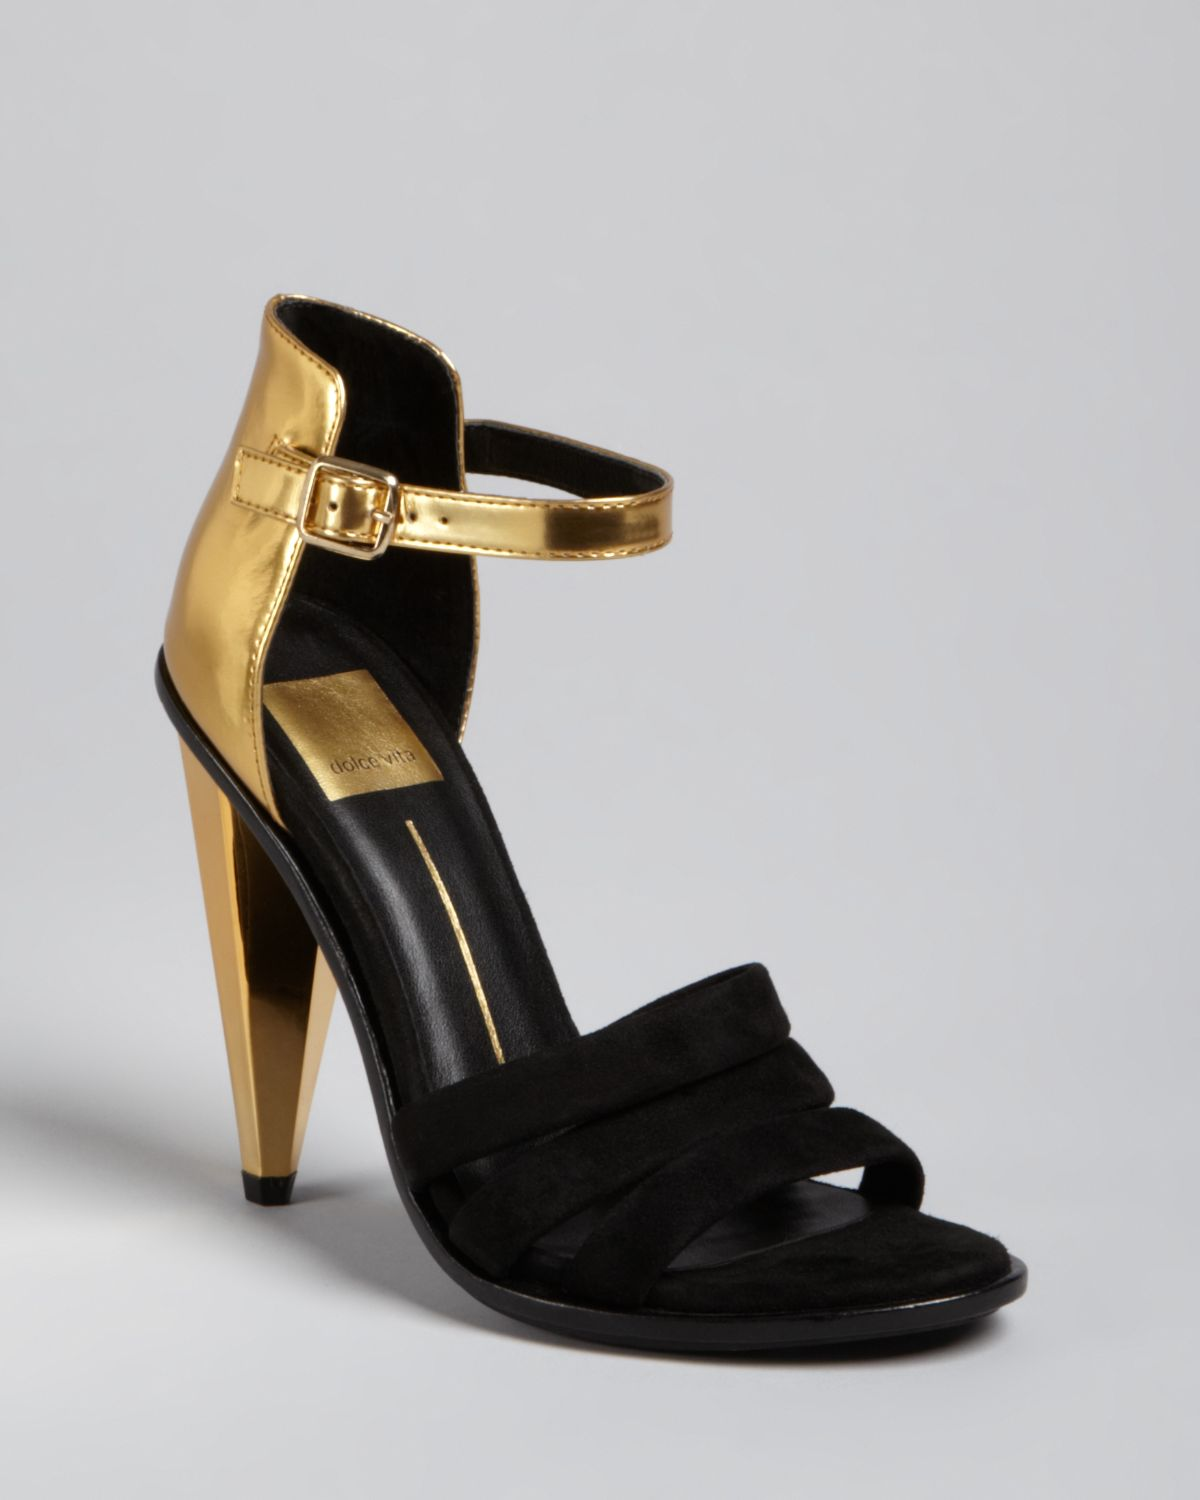 Lyst - Dolce vita Strappy Evening Sandals Neci High Heel in Metallic